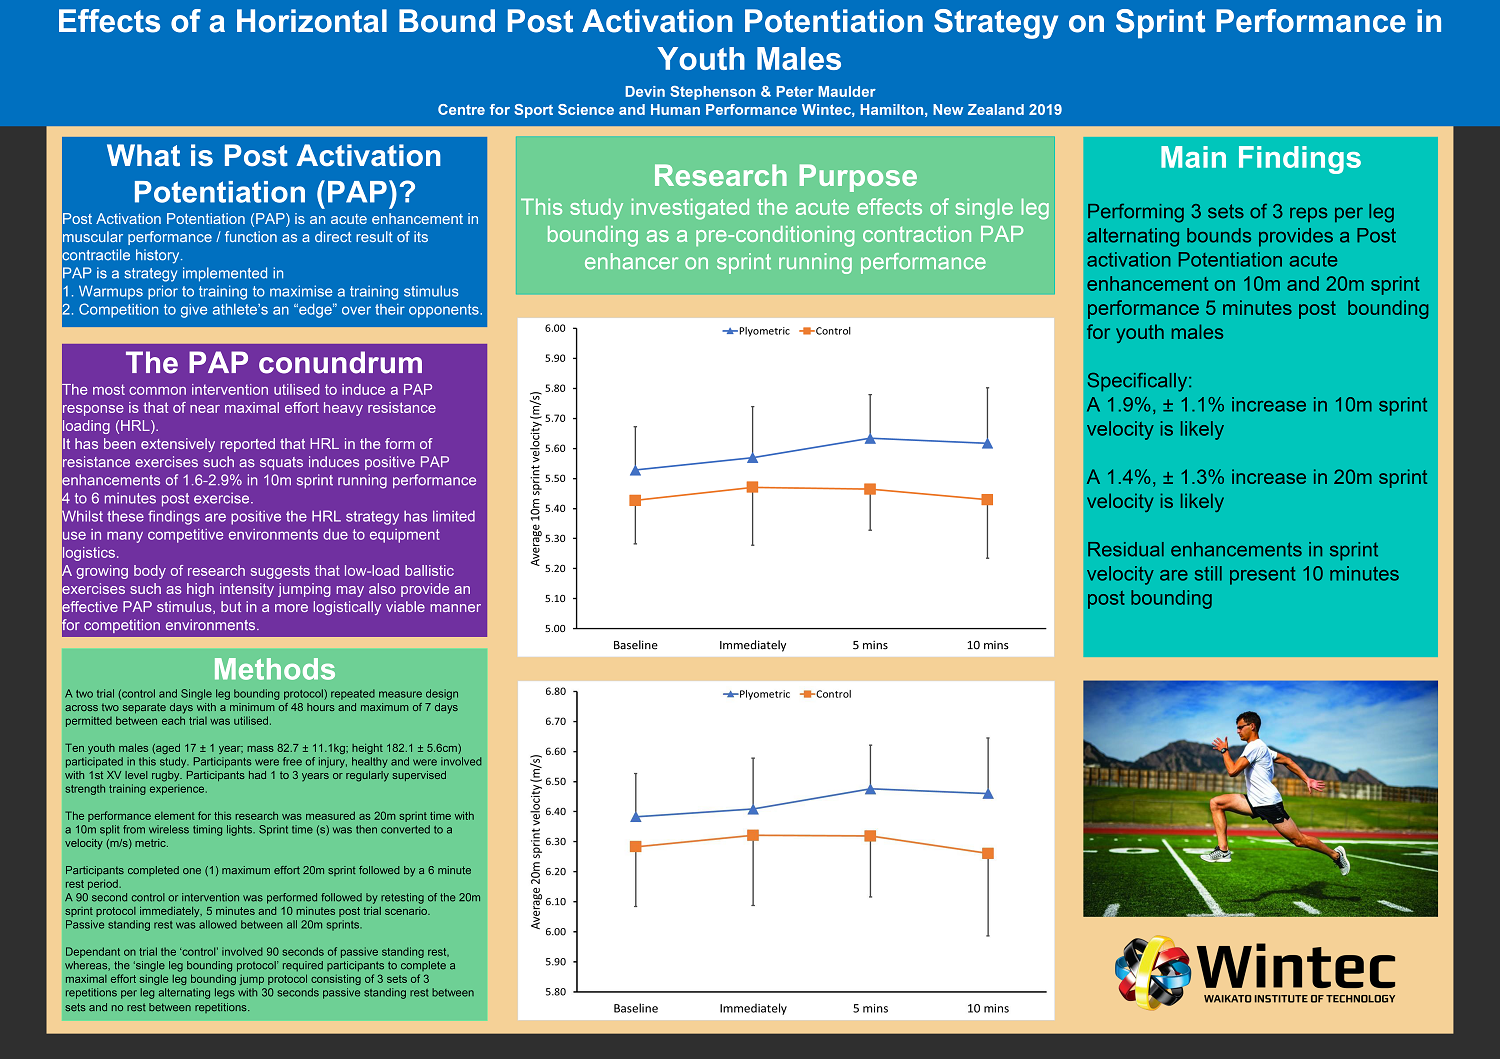 Effects of a Horizontal Bound Post Activation Potentiation Strategy on Sprint Performance in Youth Males